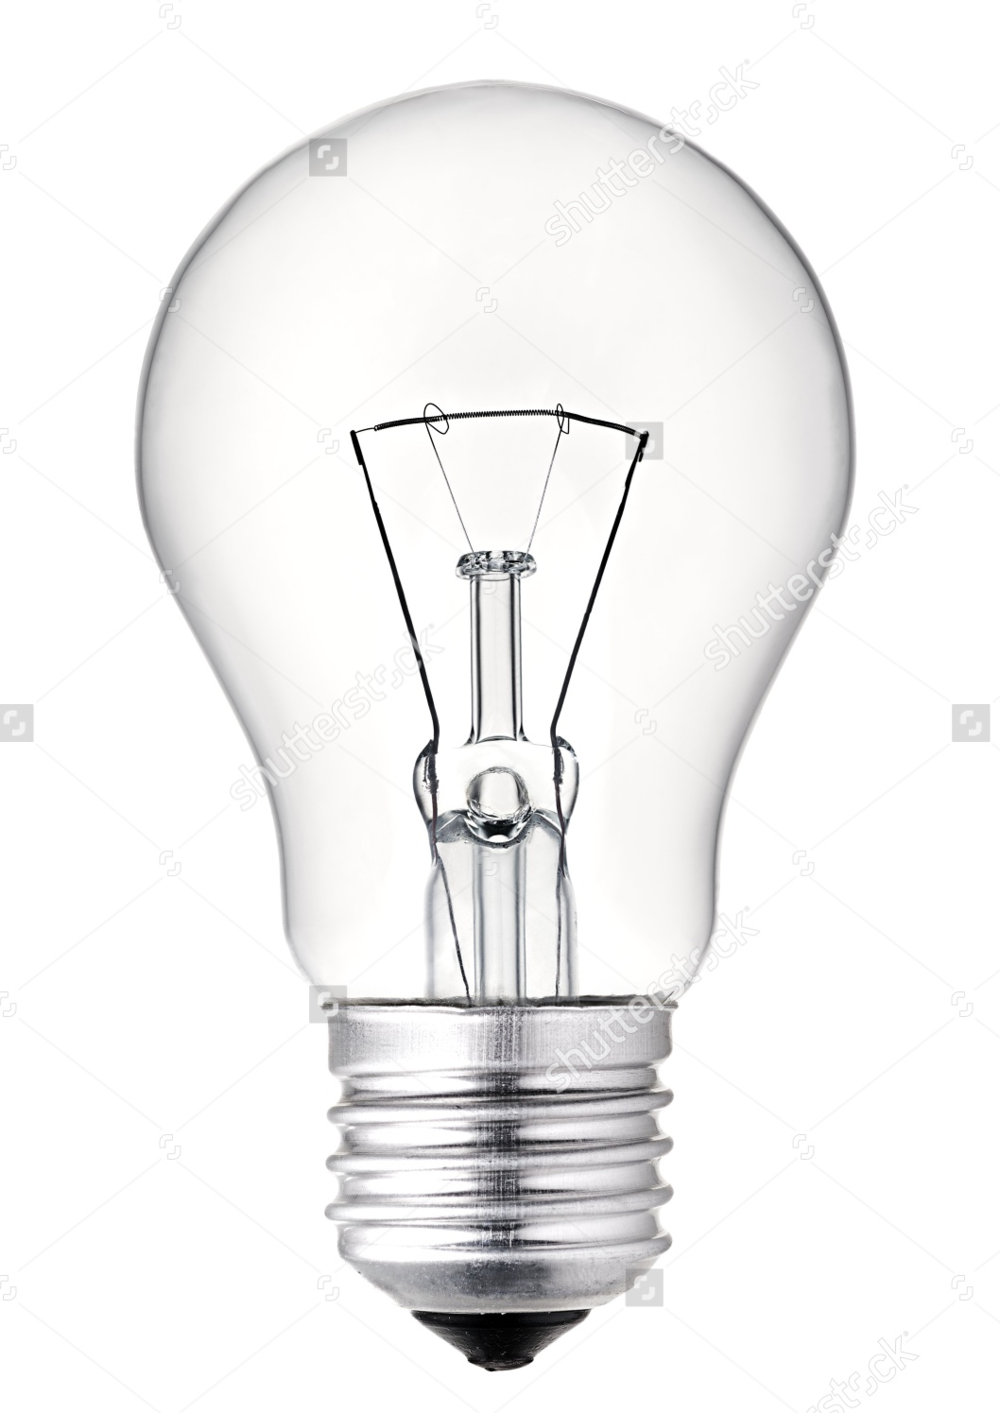 stock-photo-light-bulb-93922045.jpg